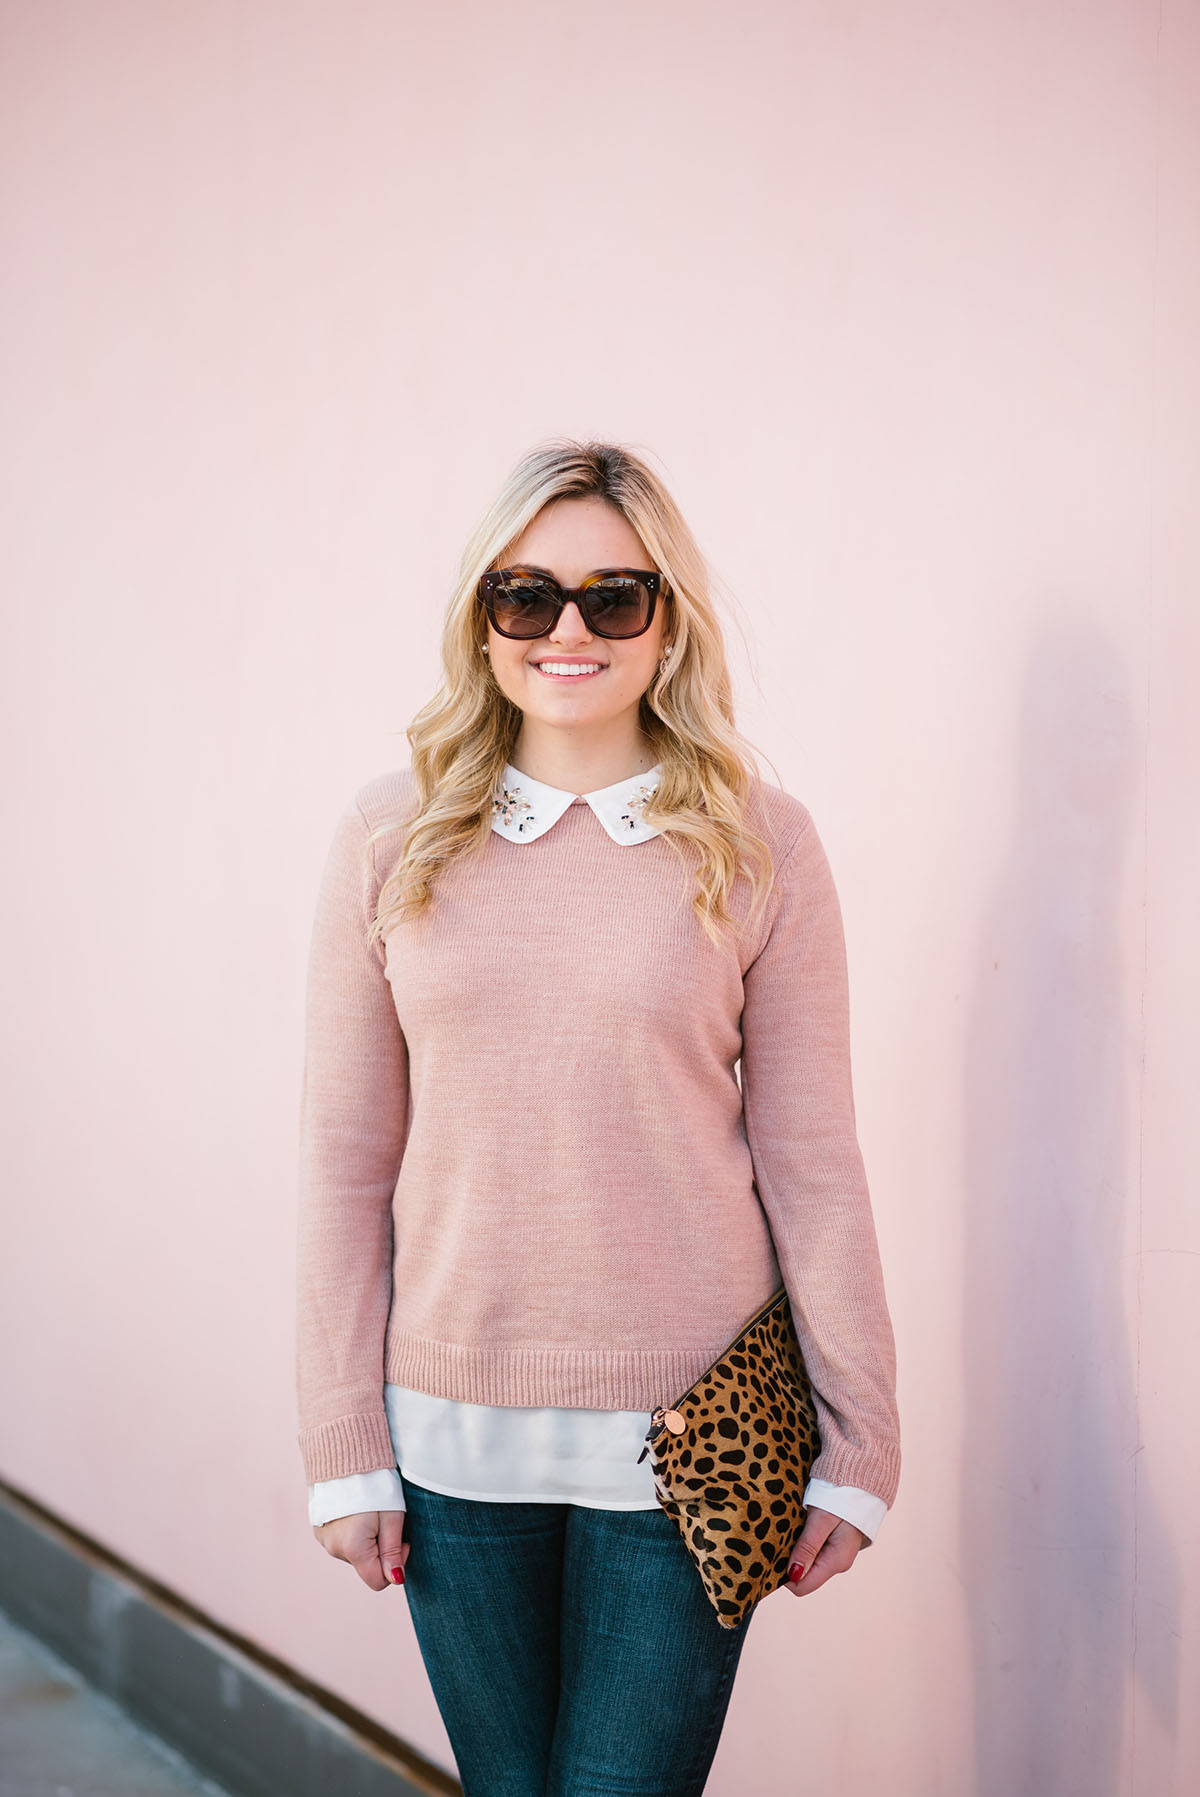 Bows & Sequins wearing a layered blush pink sweater with Celine sunglasses and a Clare V leopard clutch